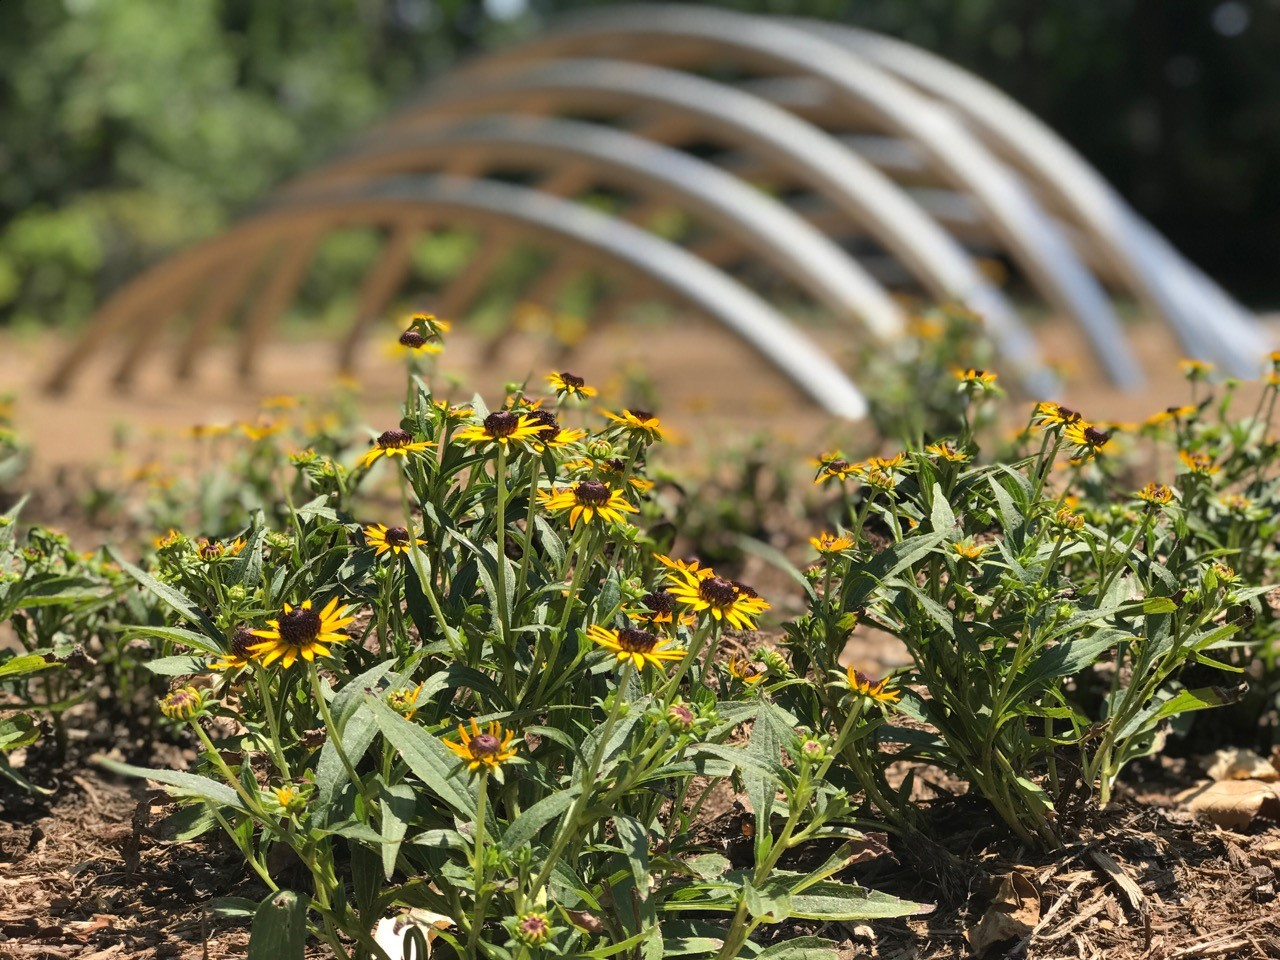 New butterfly garden, pavilion, sculpture and walking paths ready to enjoy in Minturn Park!